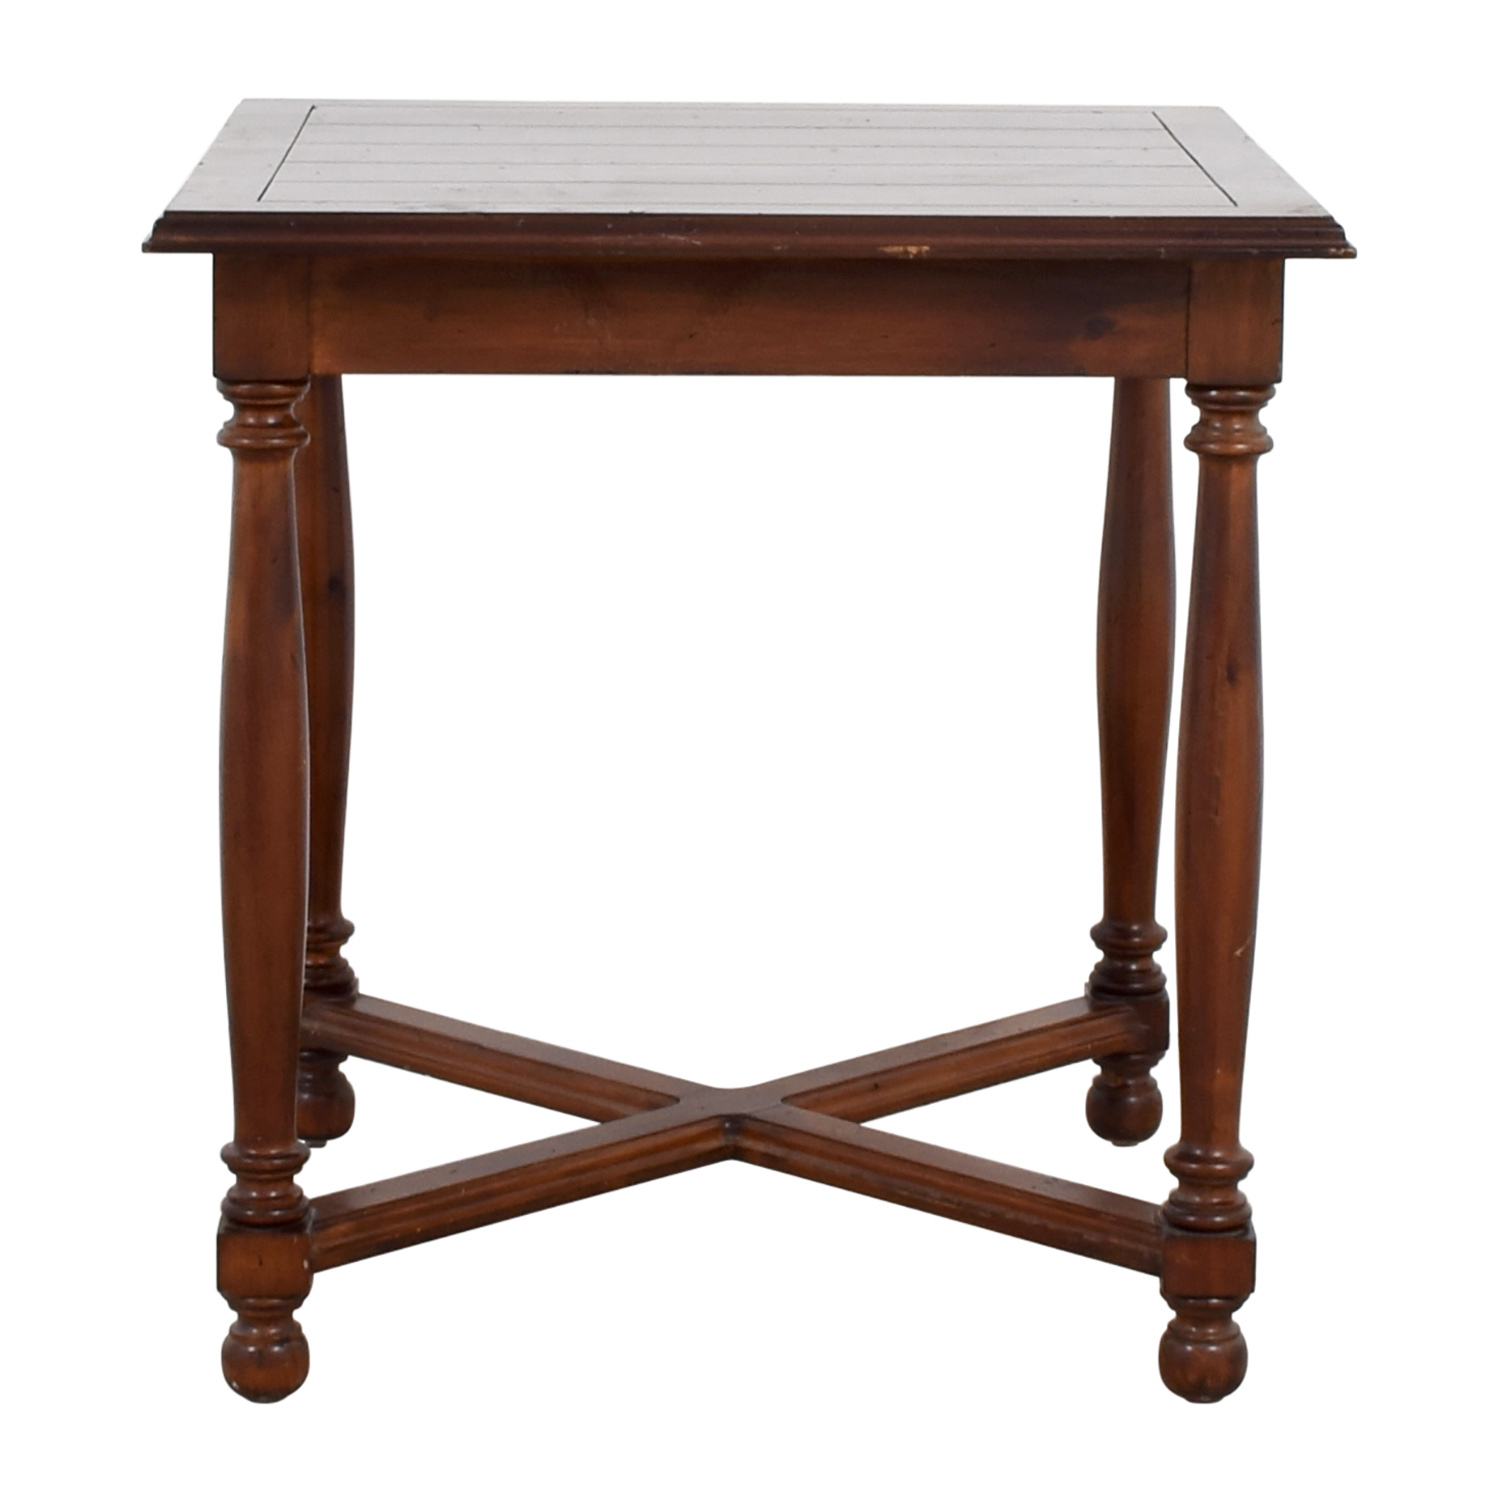 Furniture Masters Furniture Masters Crossed Base End Table coupon